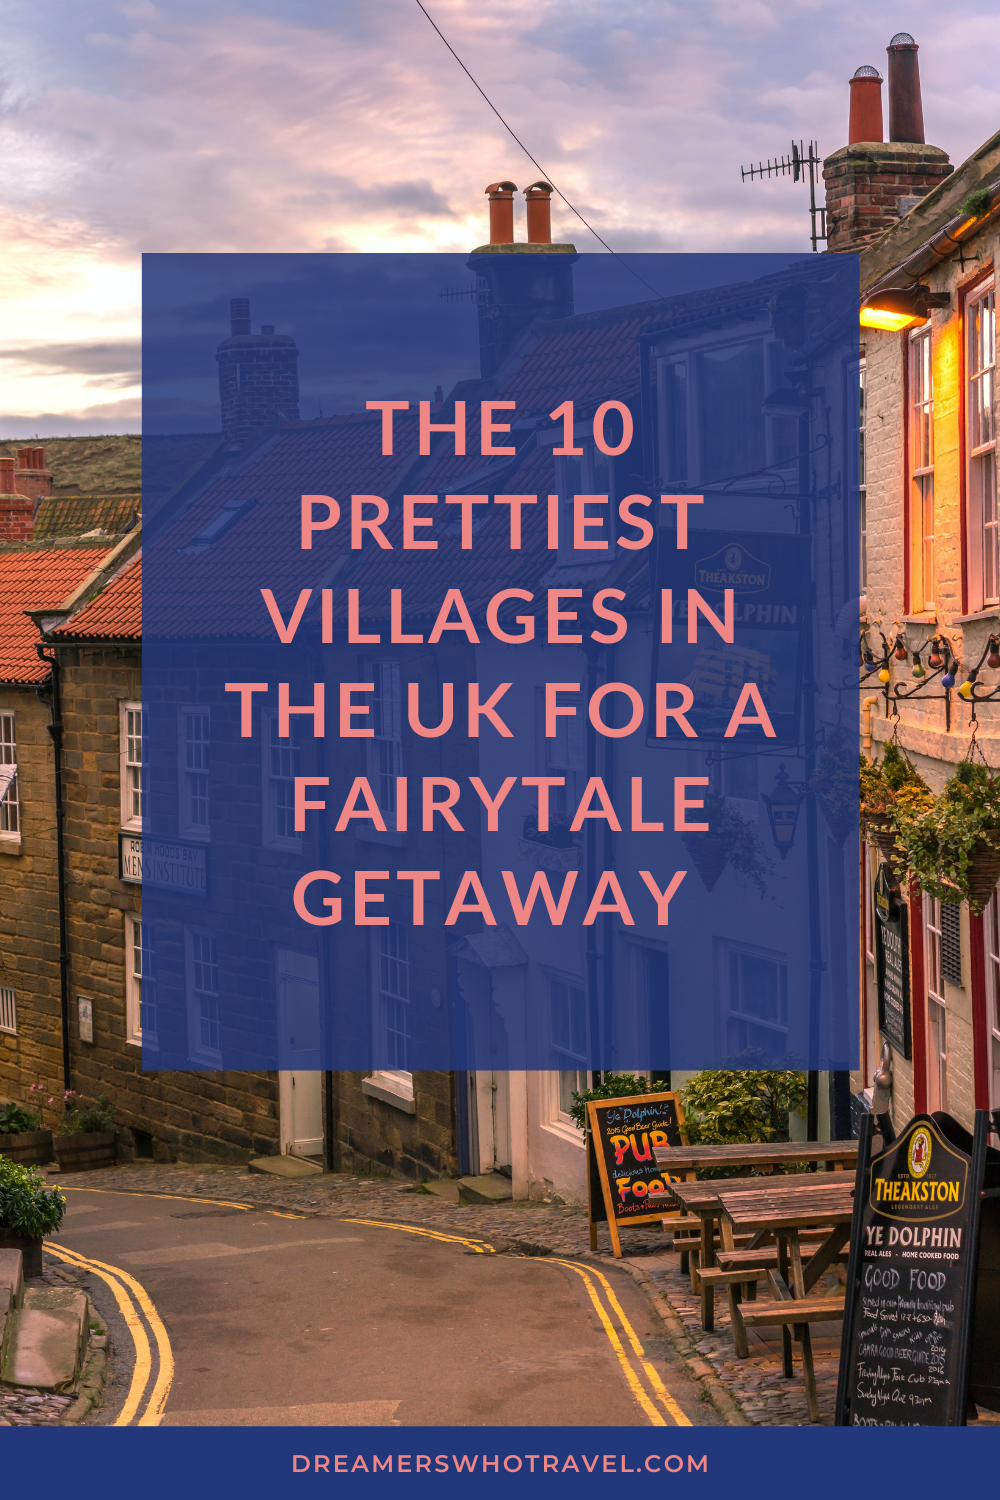 THE 10 PRETTIEST VILLAGES IN THE UK FOR A FAIRYTALE GETAWAY